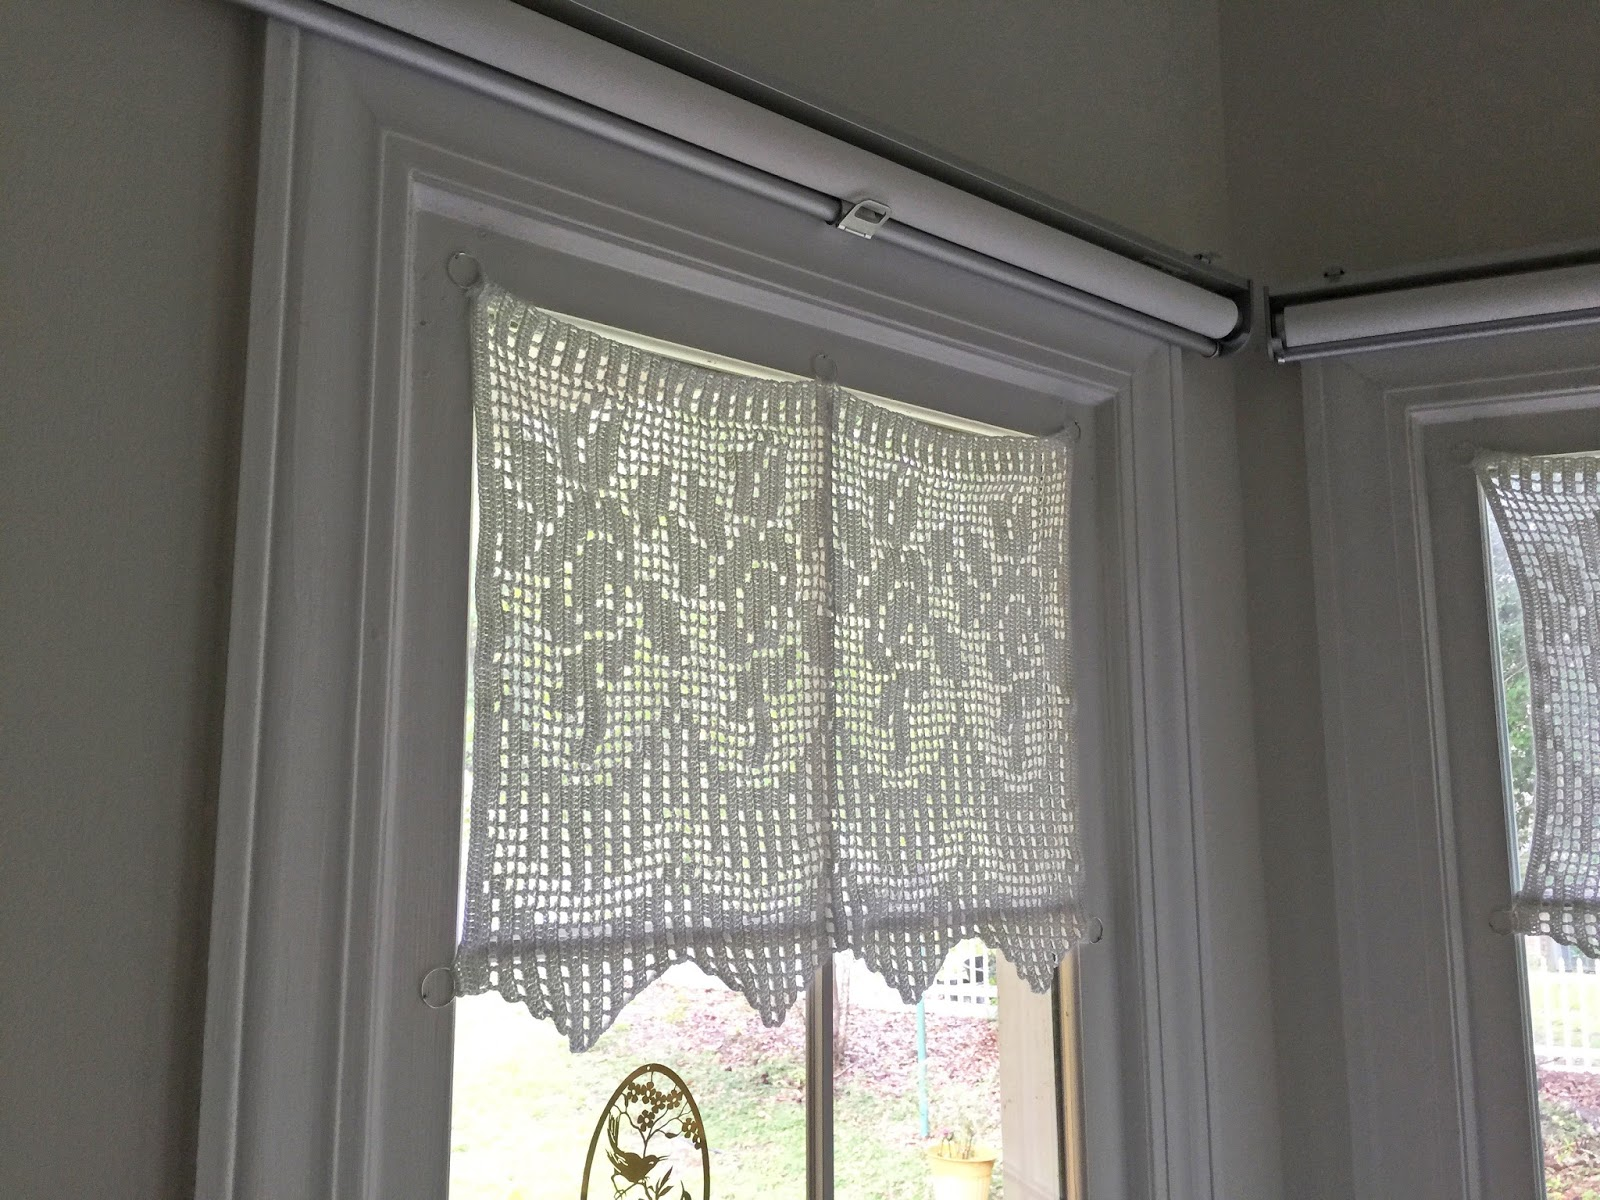 Mariette S Back To Basics Kitchen Bay Window New Crocheted Rose Curtains Ikea Roller Blind